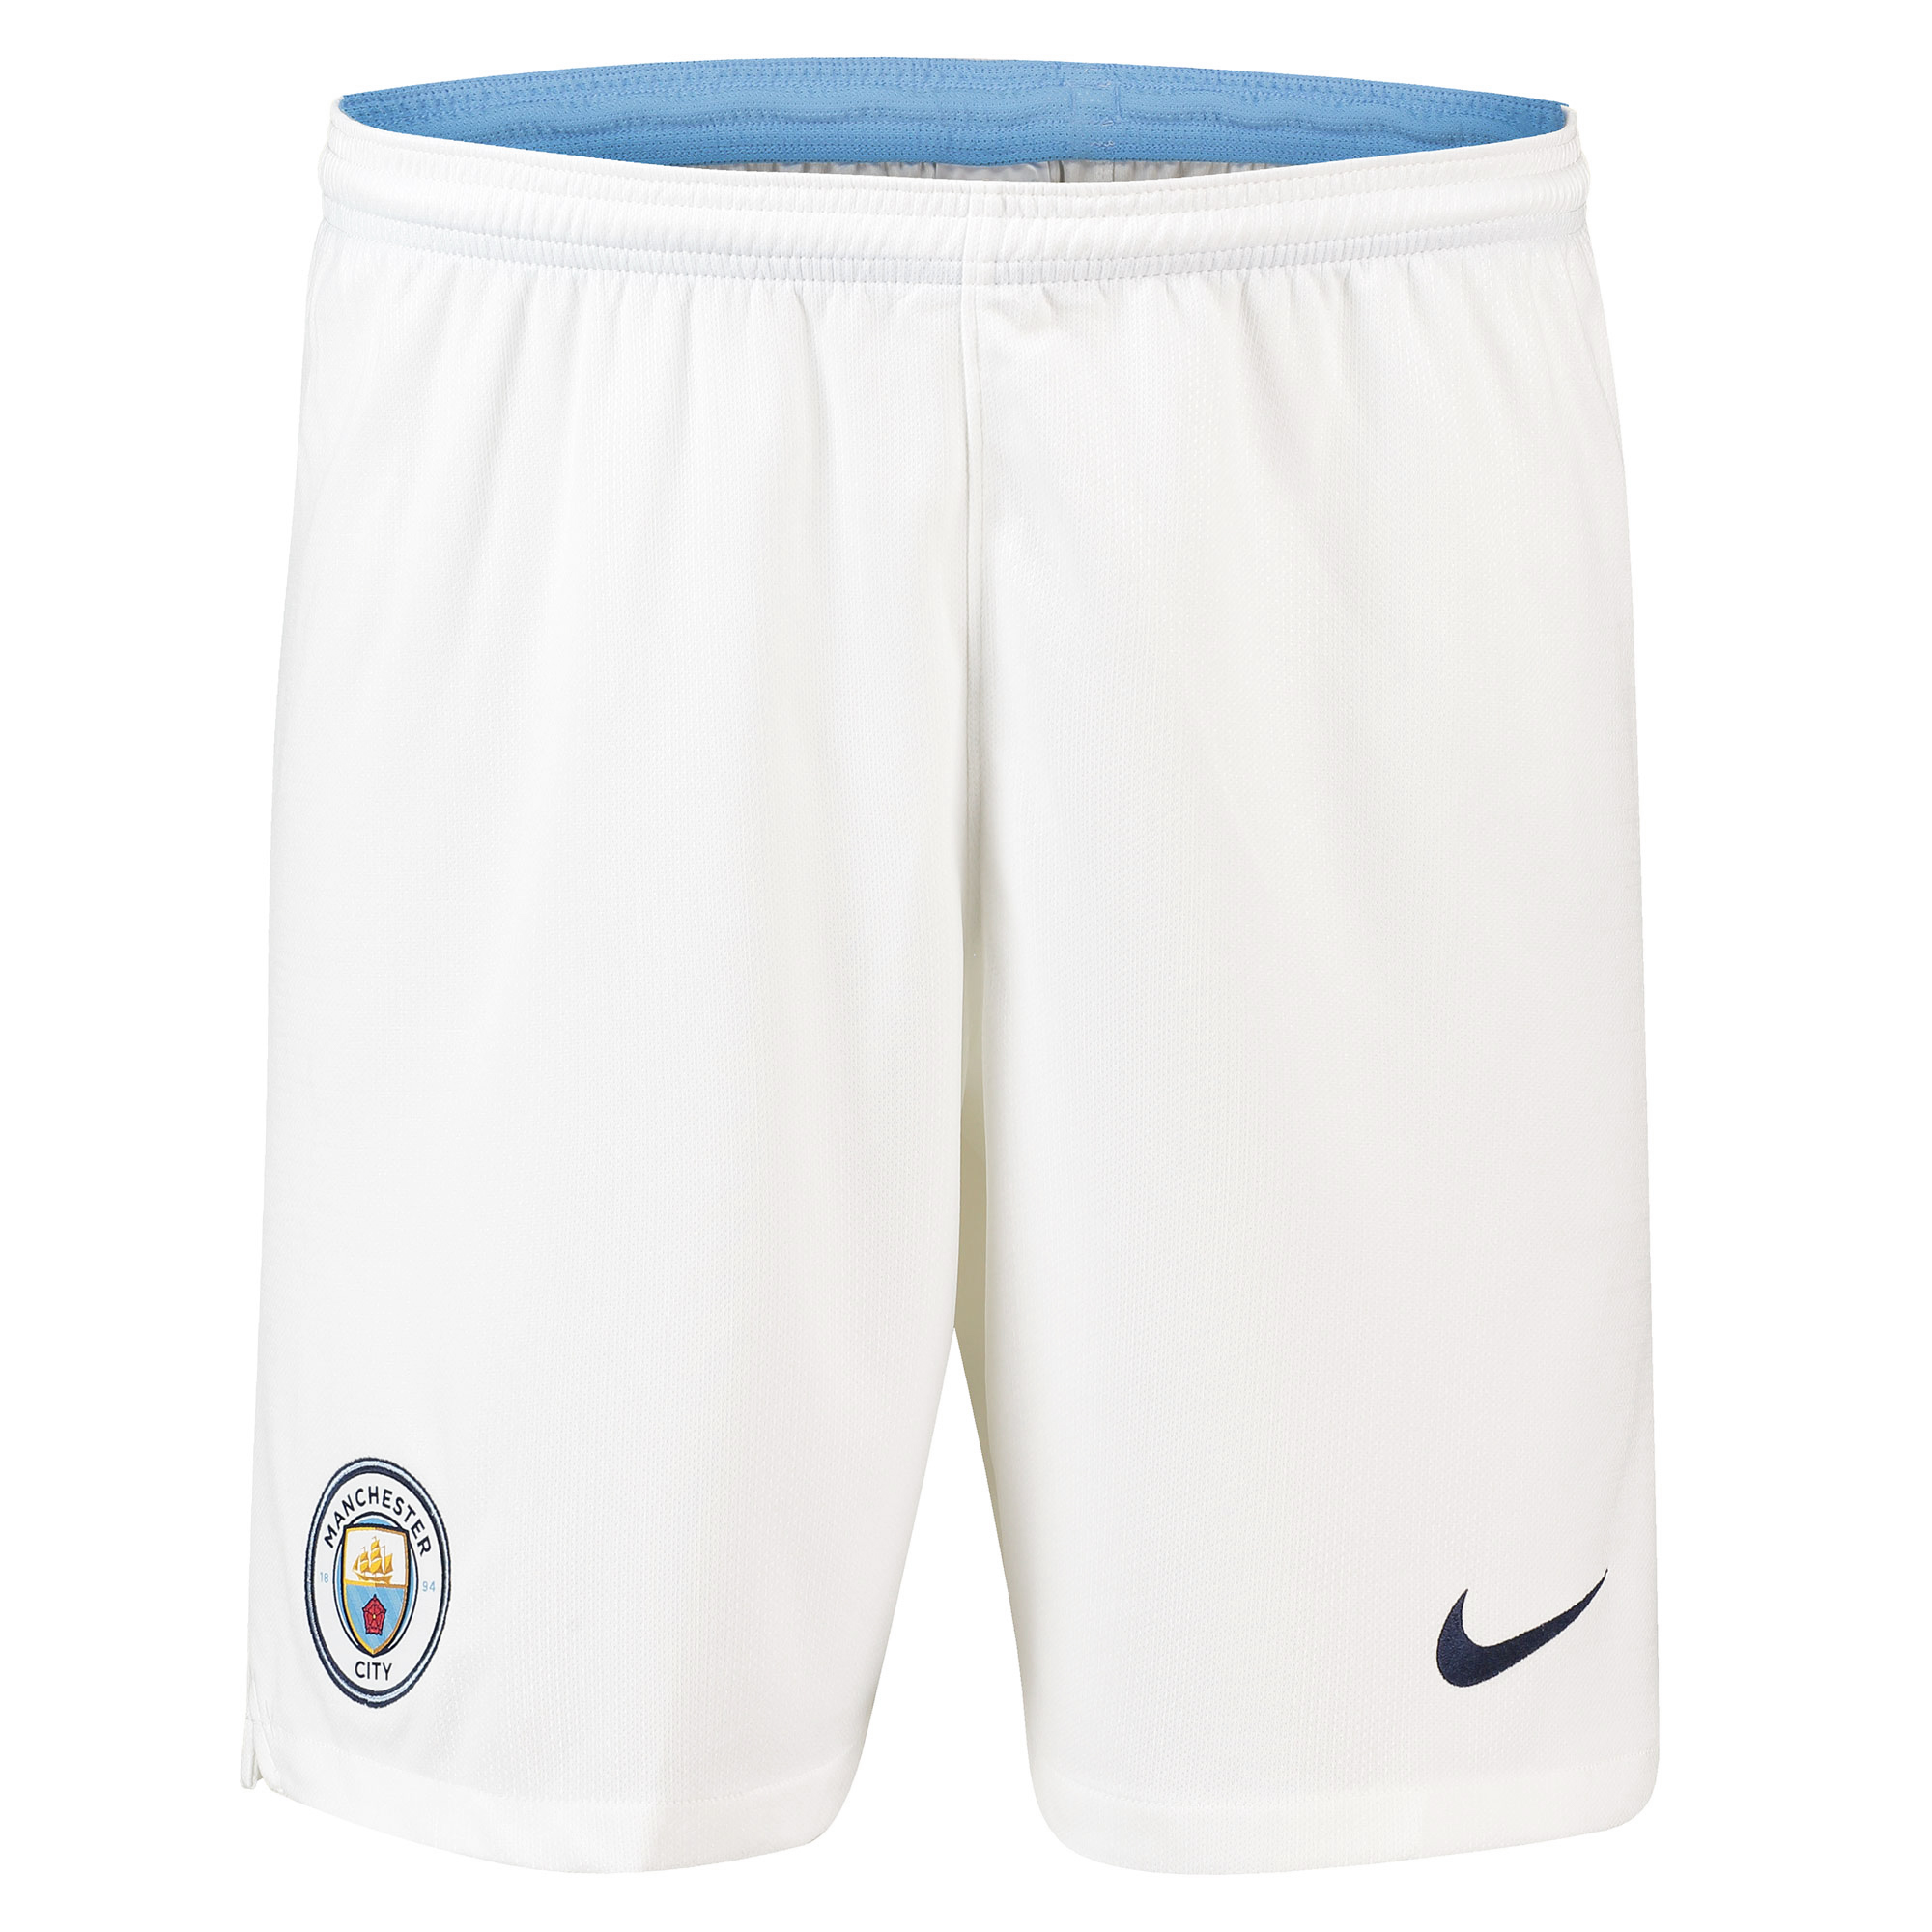 Short de stade Manchester City Domicile 2018-2019